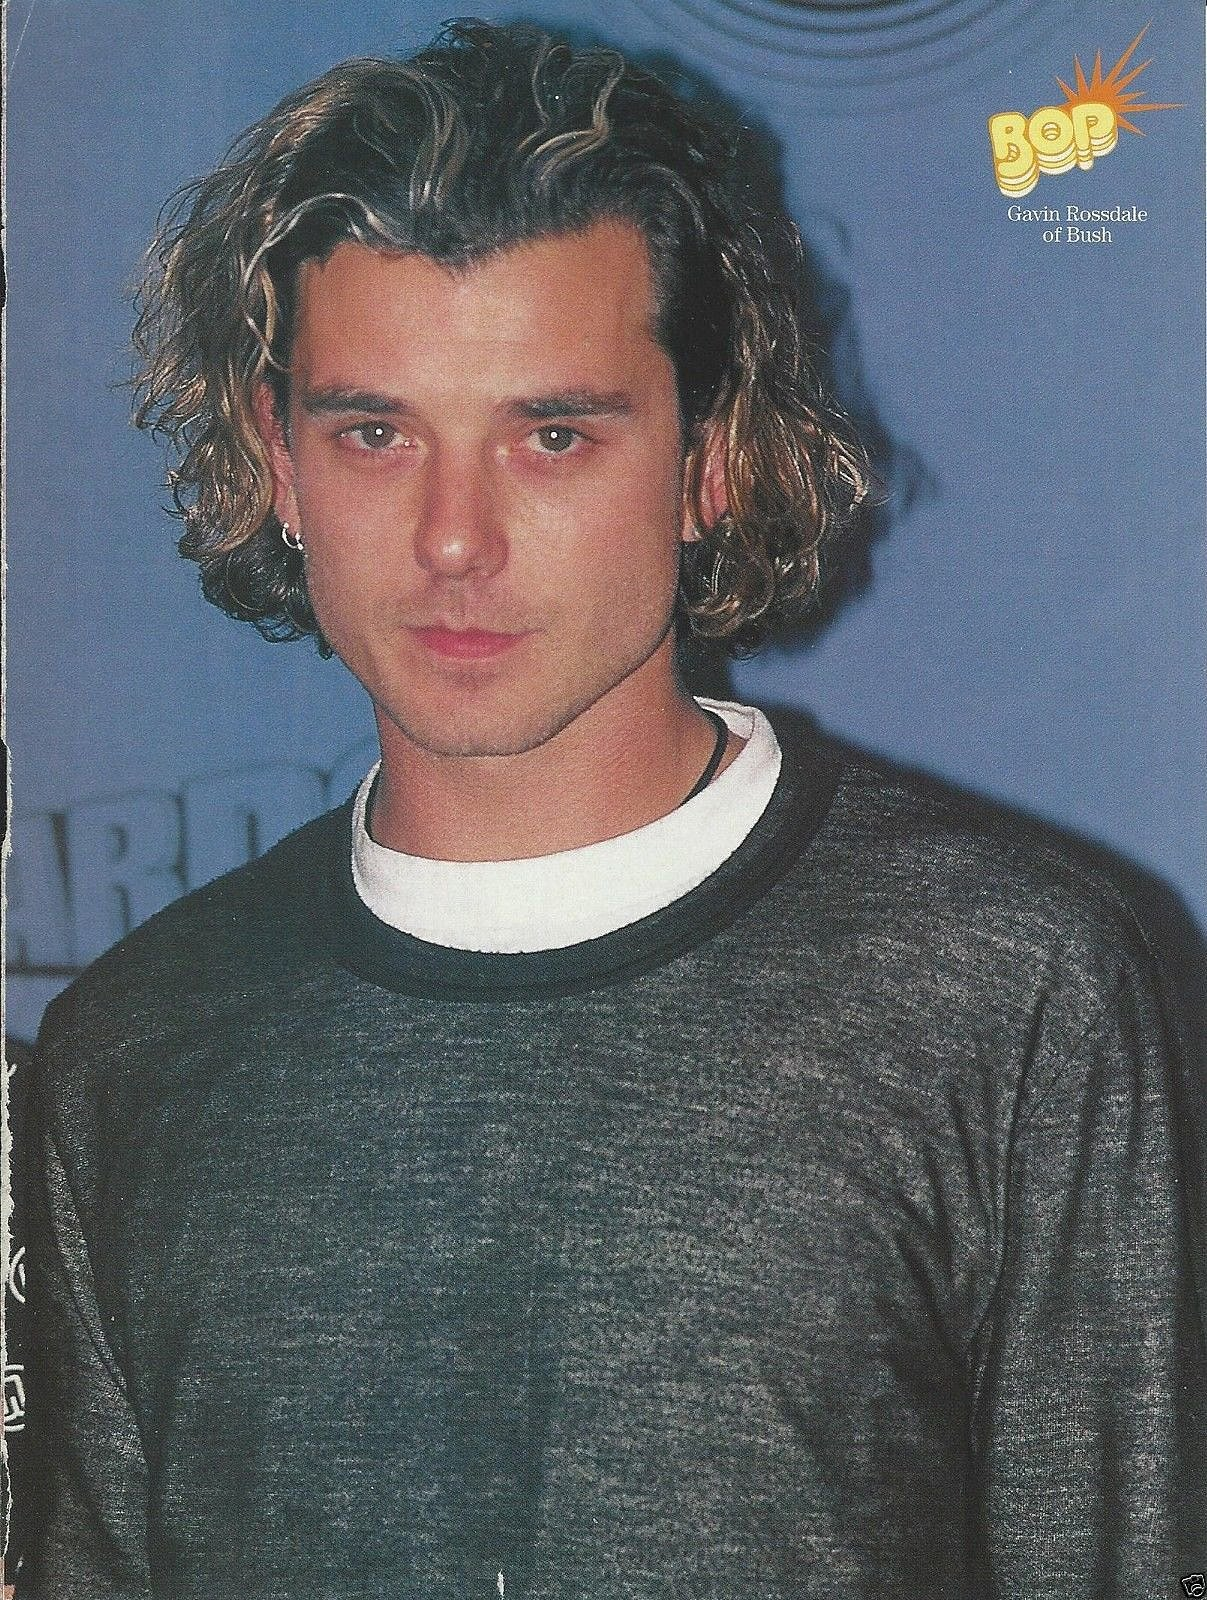 Gavin Rossdale | 25 Heartthrob Posters From the '90s You ...